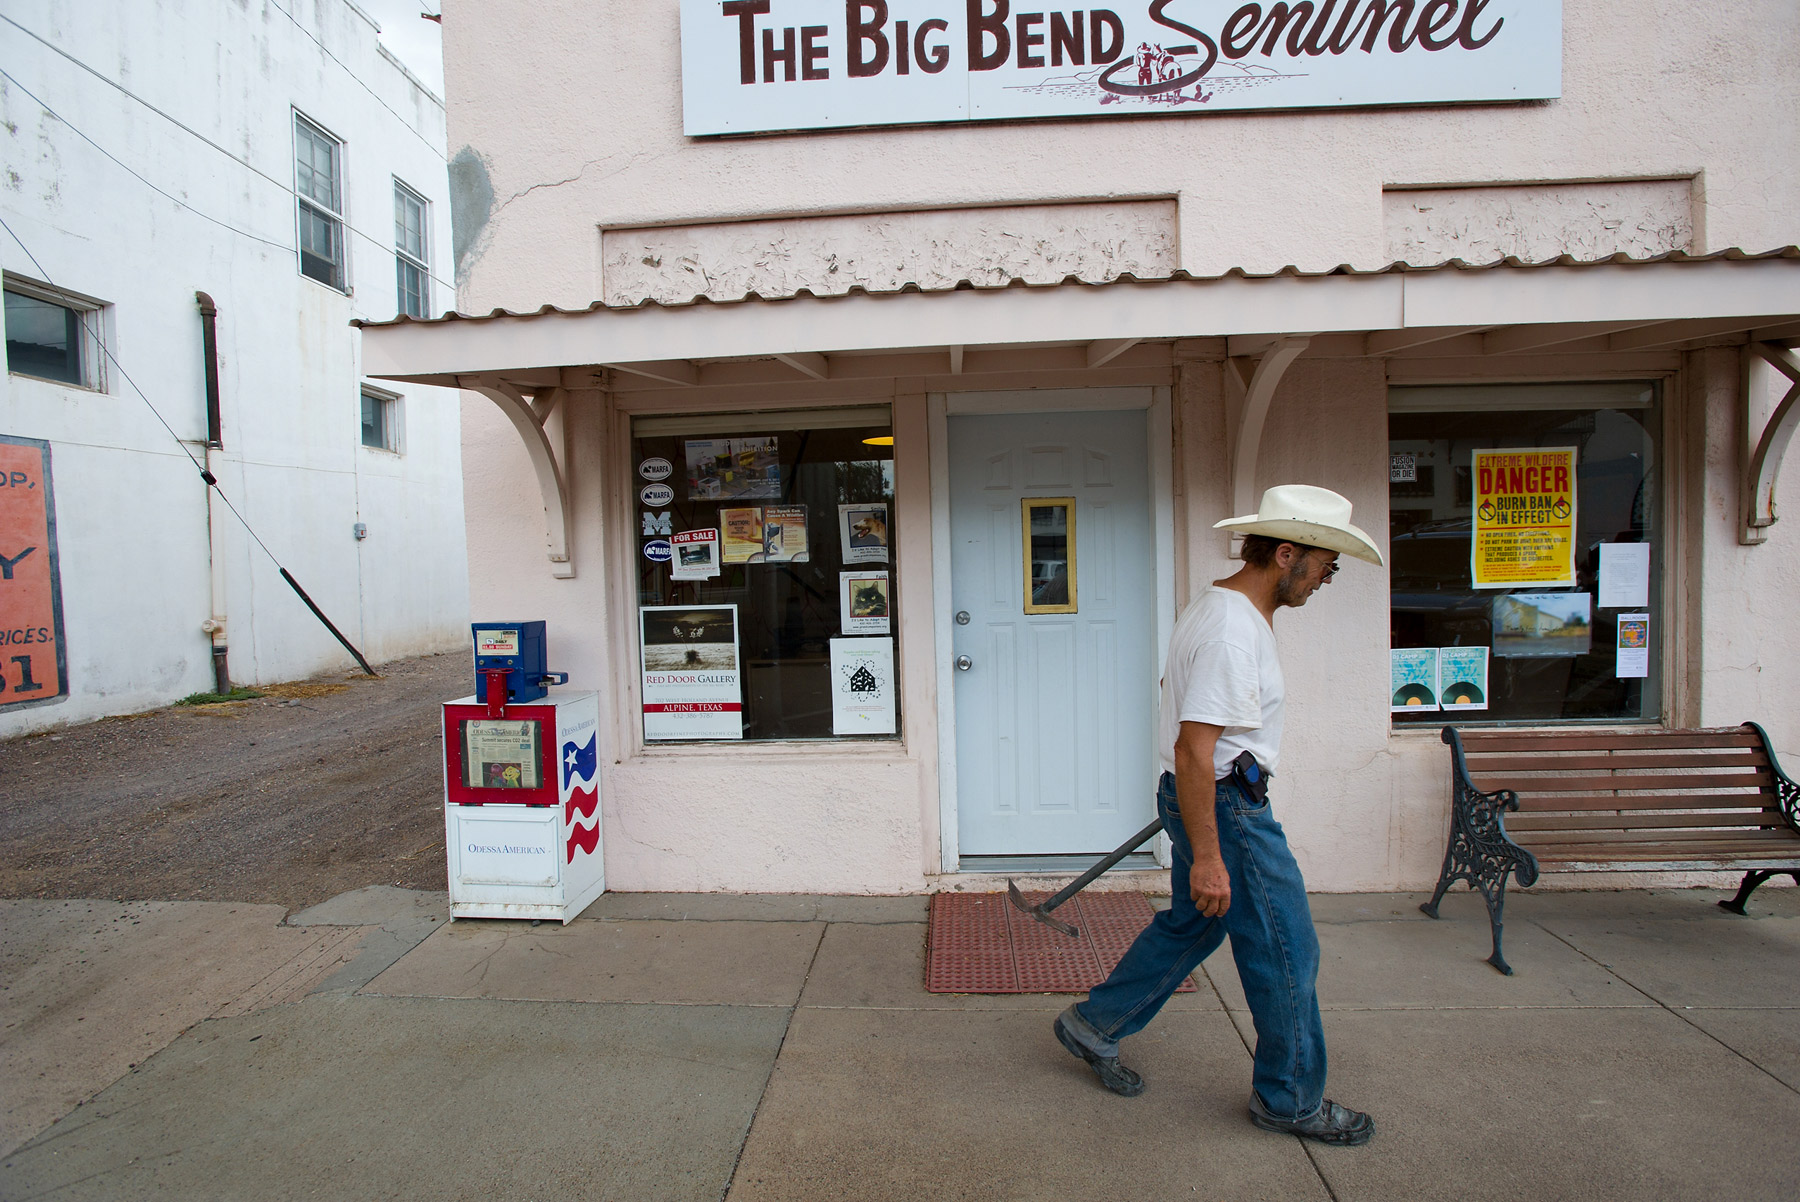 JoshuaBright_Town&Country_Deadline_WeeklyPaper_TheBigBendSentinel_Marfa_Texas_color